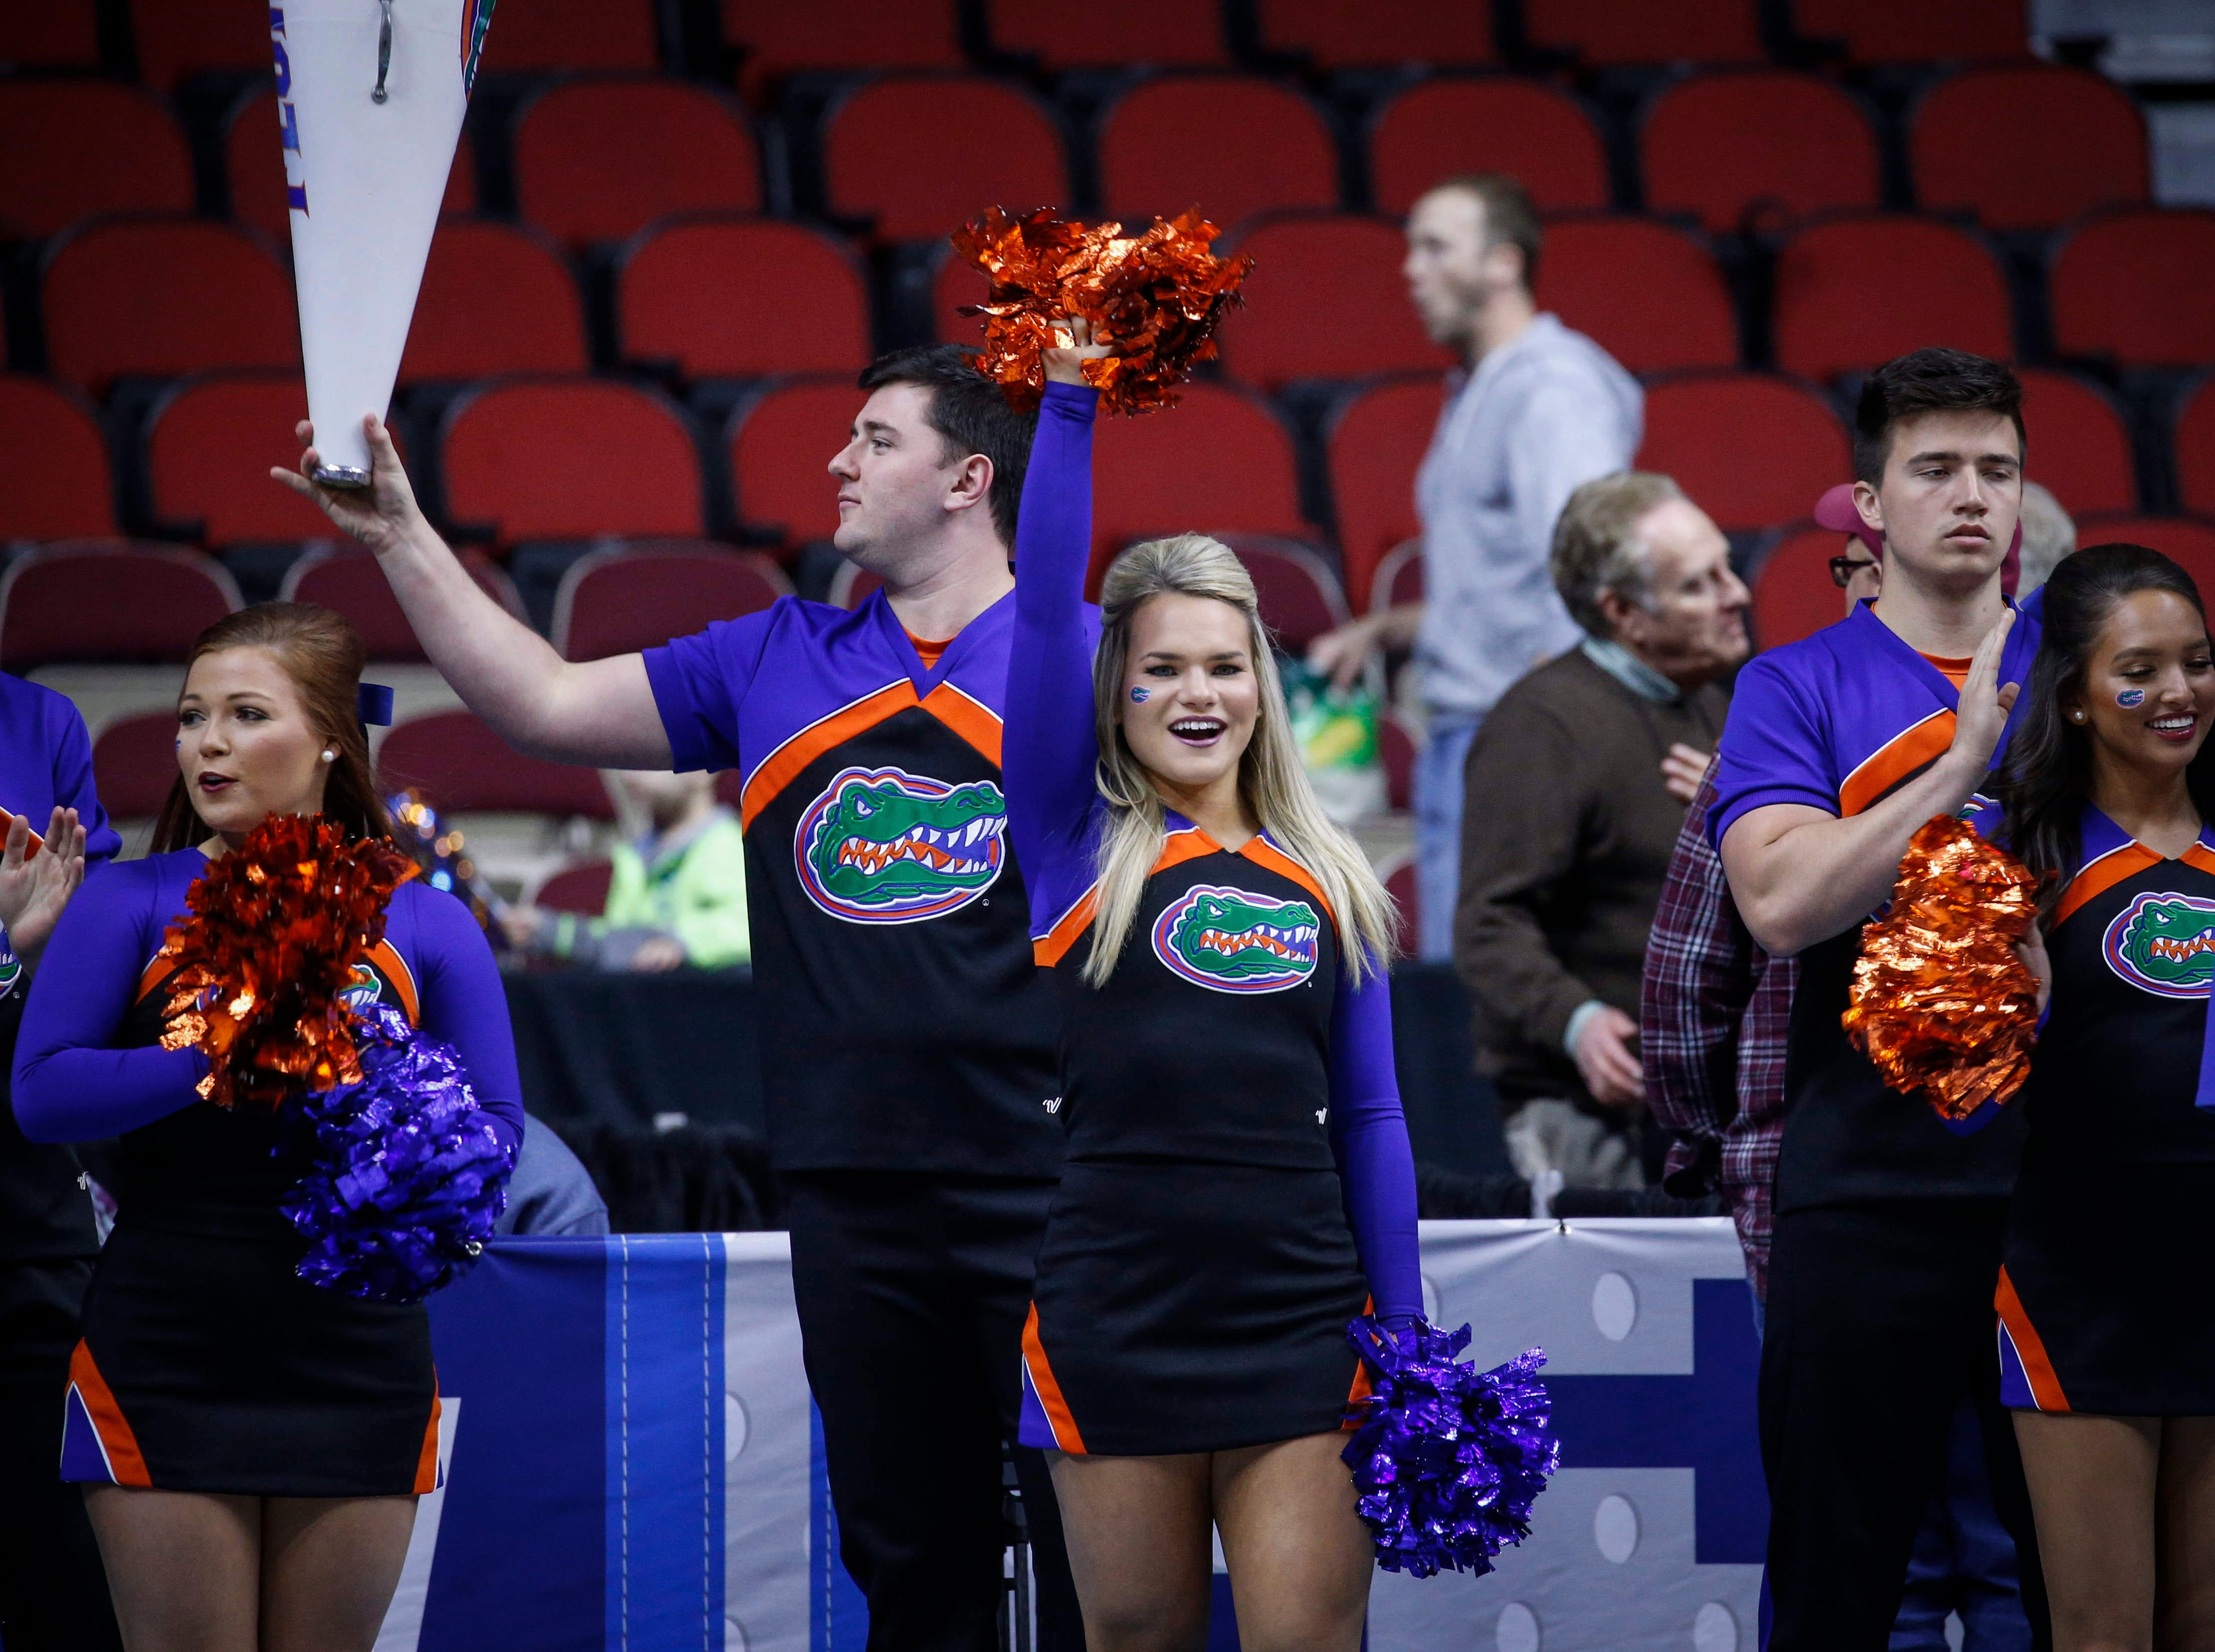 Members of the University of Florida cheer squad run a drill as the men's basketball team takes the court during practice on Wednesday, March 20, 2019, at Wells Fargo Arena in Des Moines, Iowa.